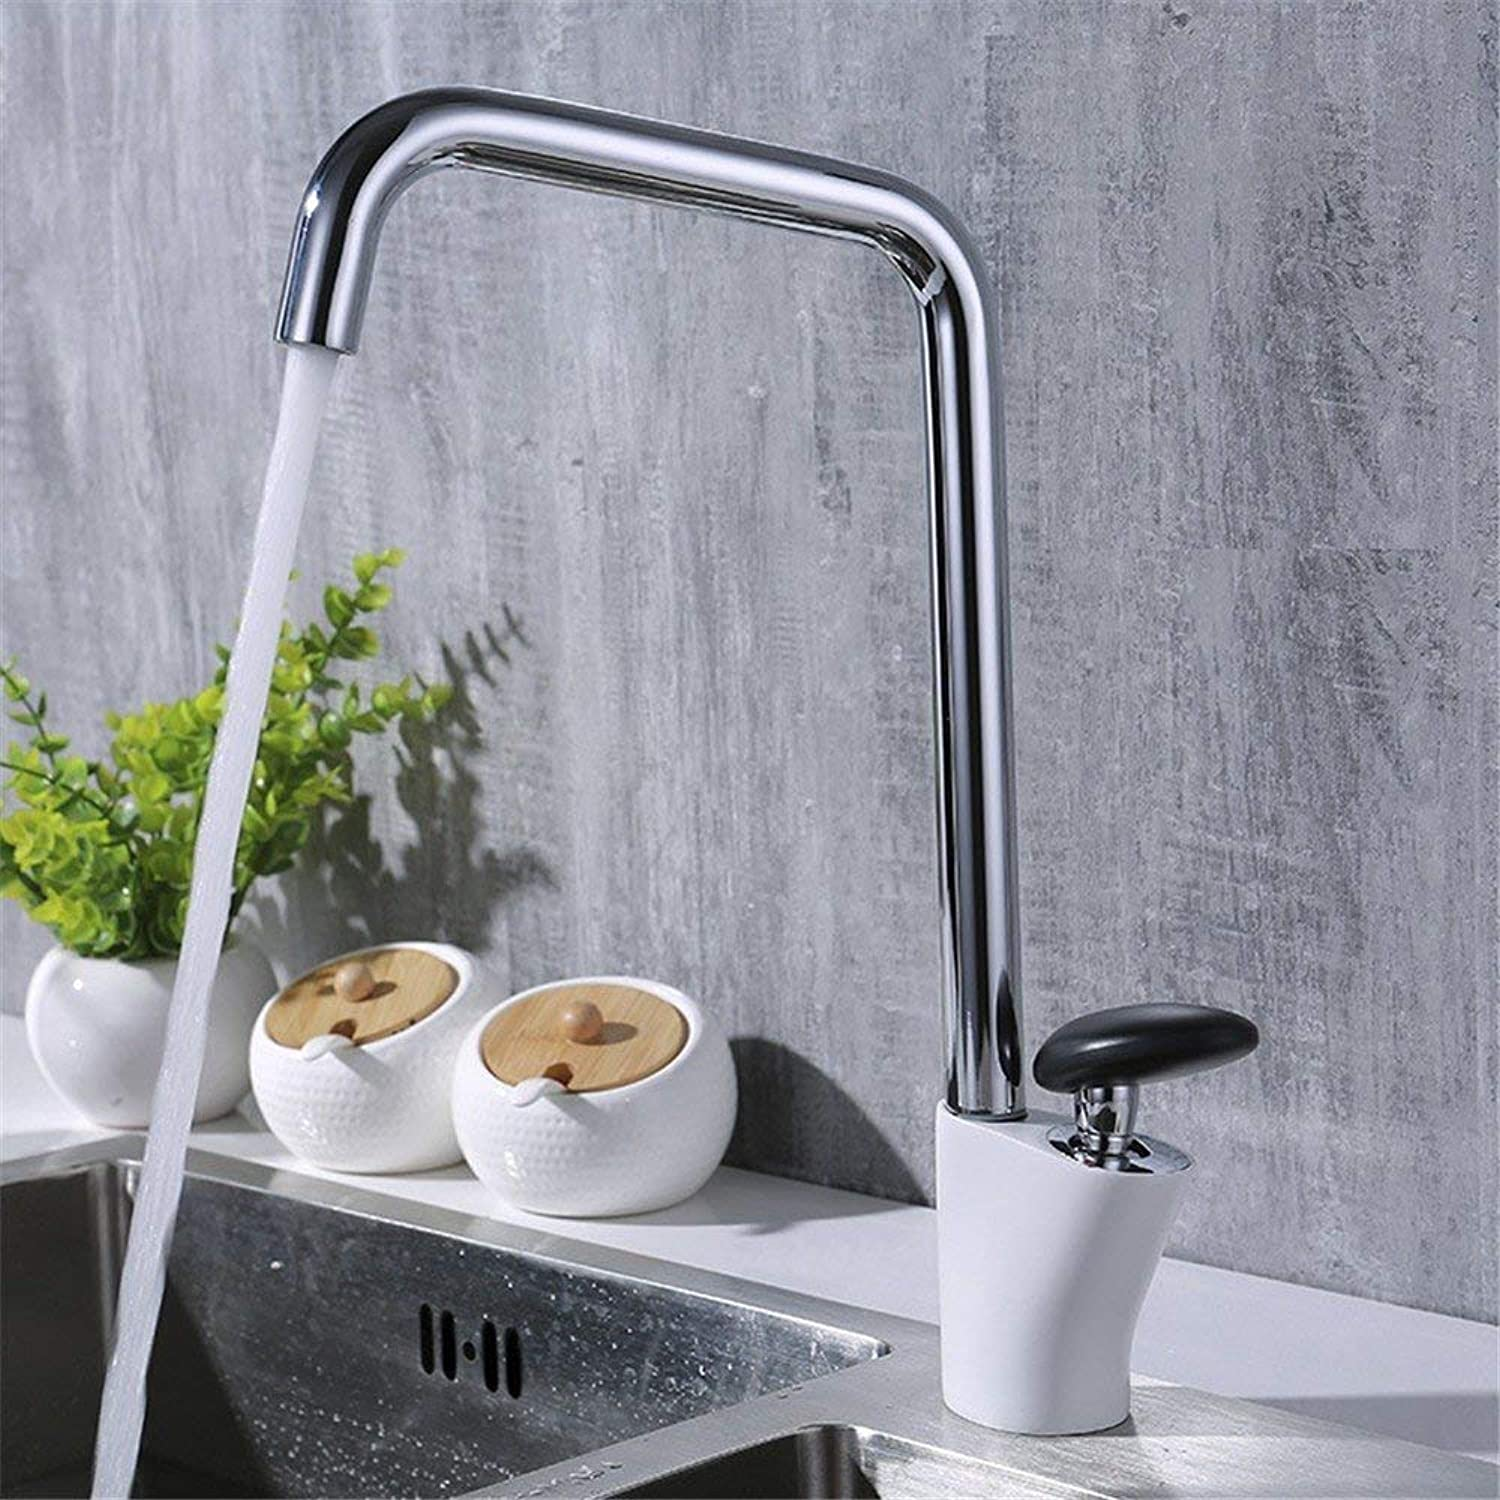 Oudan Chrome Copper Hot and Cold Basin Faucet 360 Degree redation Kitchen Bathroom Sink Faucet (color   -, Size   -)